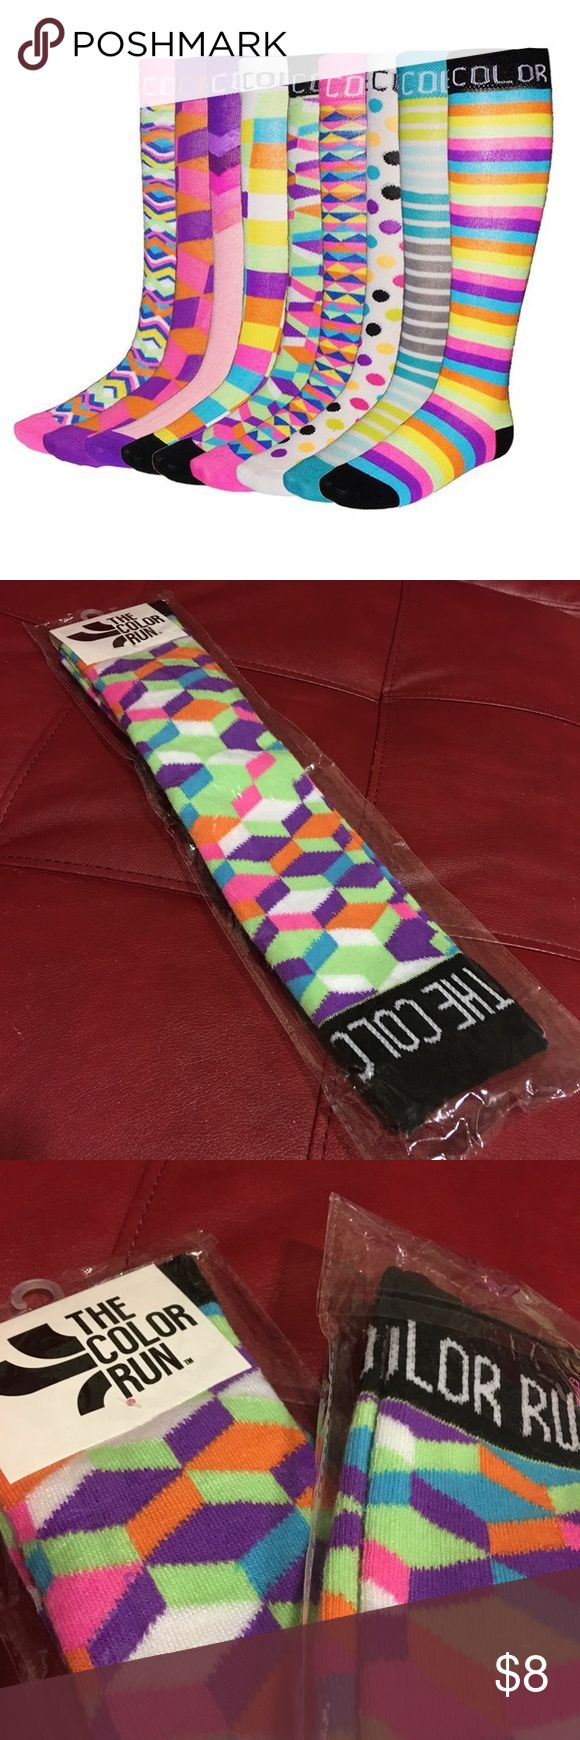 💚The Color Run Retro Running Socks💙 The Color Run Retro Running Socks...brand-new...so do you plan on running this coming year or just want some fun, funky knee high socks..here ya go!..price firm 😊👍🏻 THE COLOR RUN Accessories Hosiery & Socks